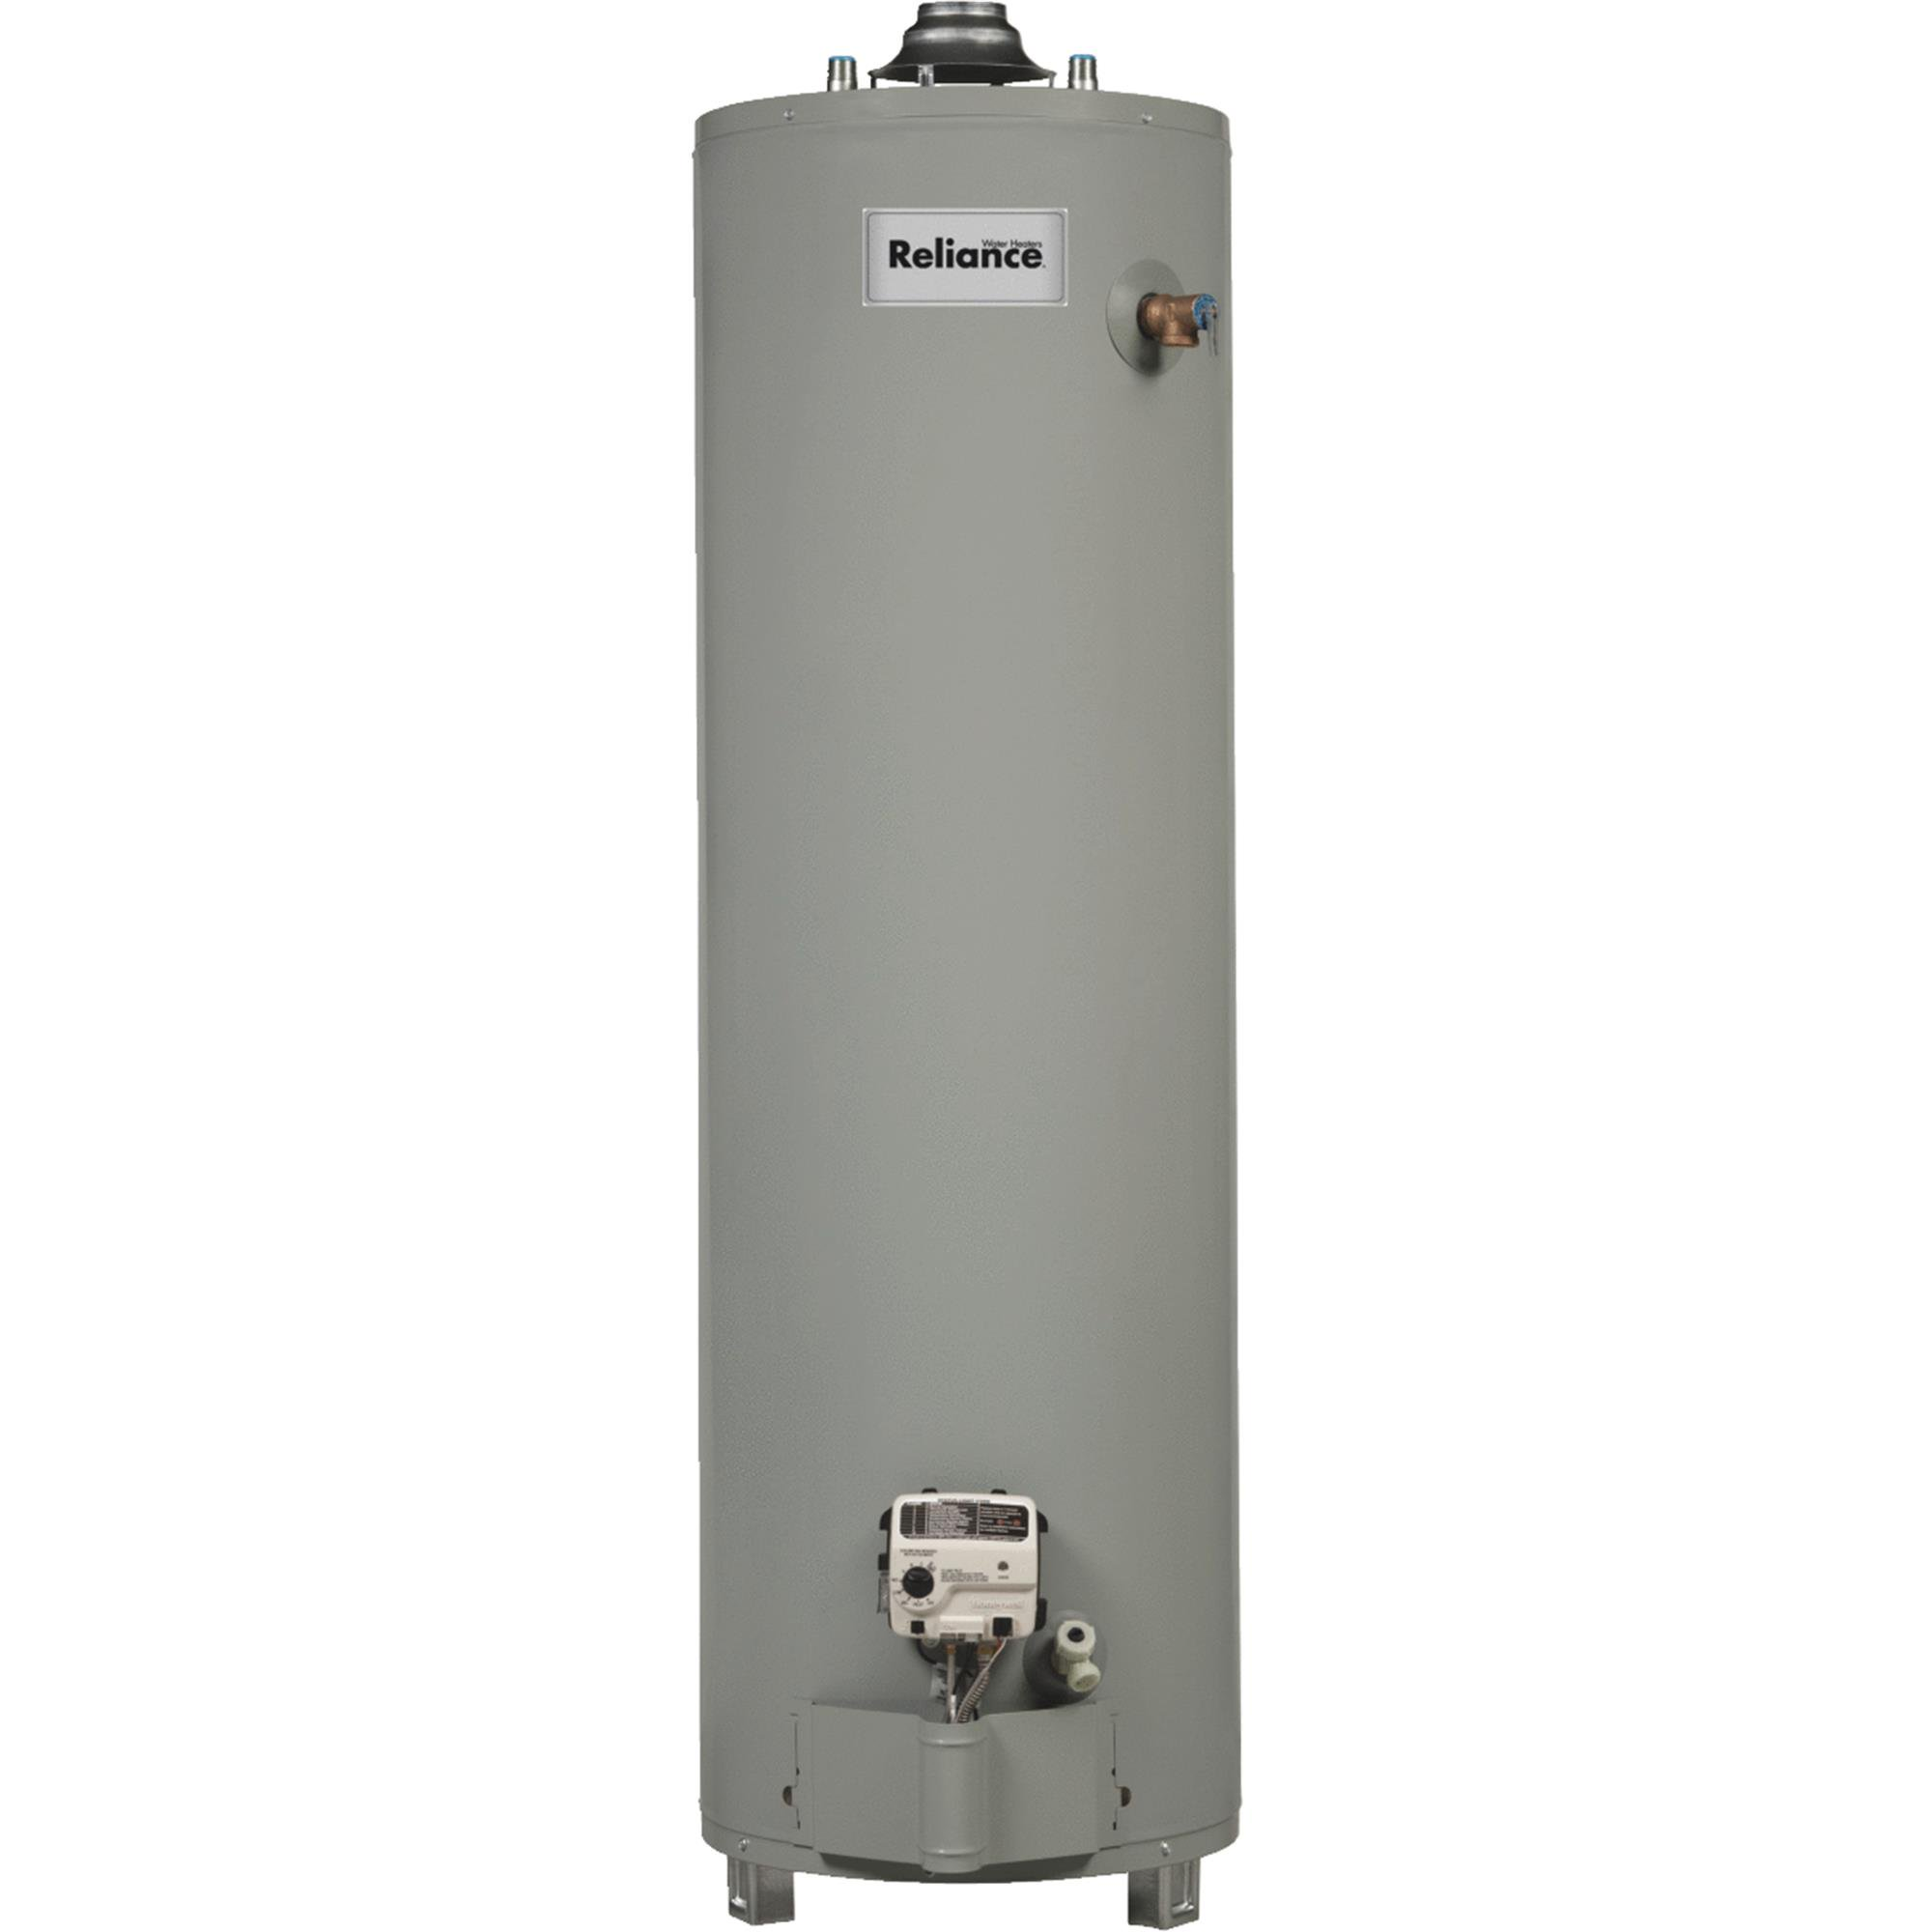 Reliance 30gal Ultra Low NOx Natural Gas Gas Water Heater